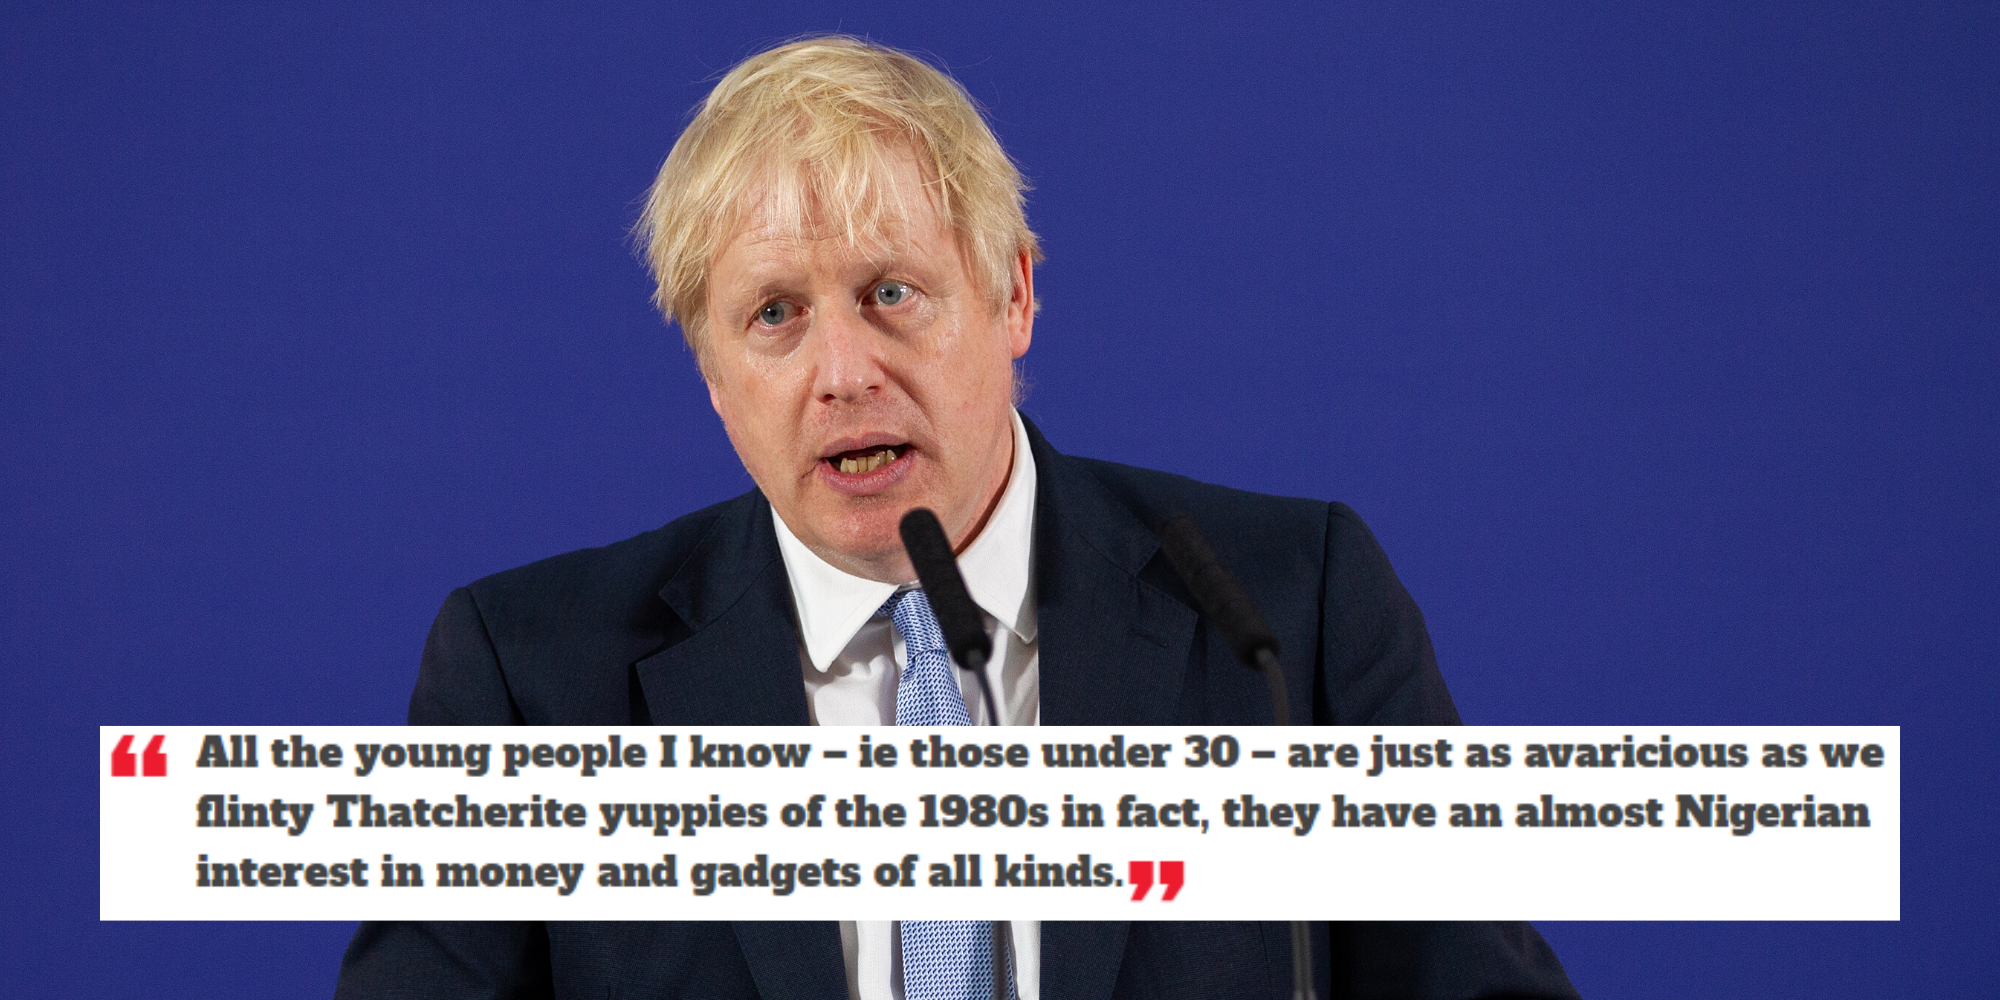 General Election Boris Johnson S Most Offensive Quotes Indy100 Indy100